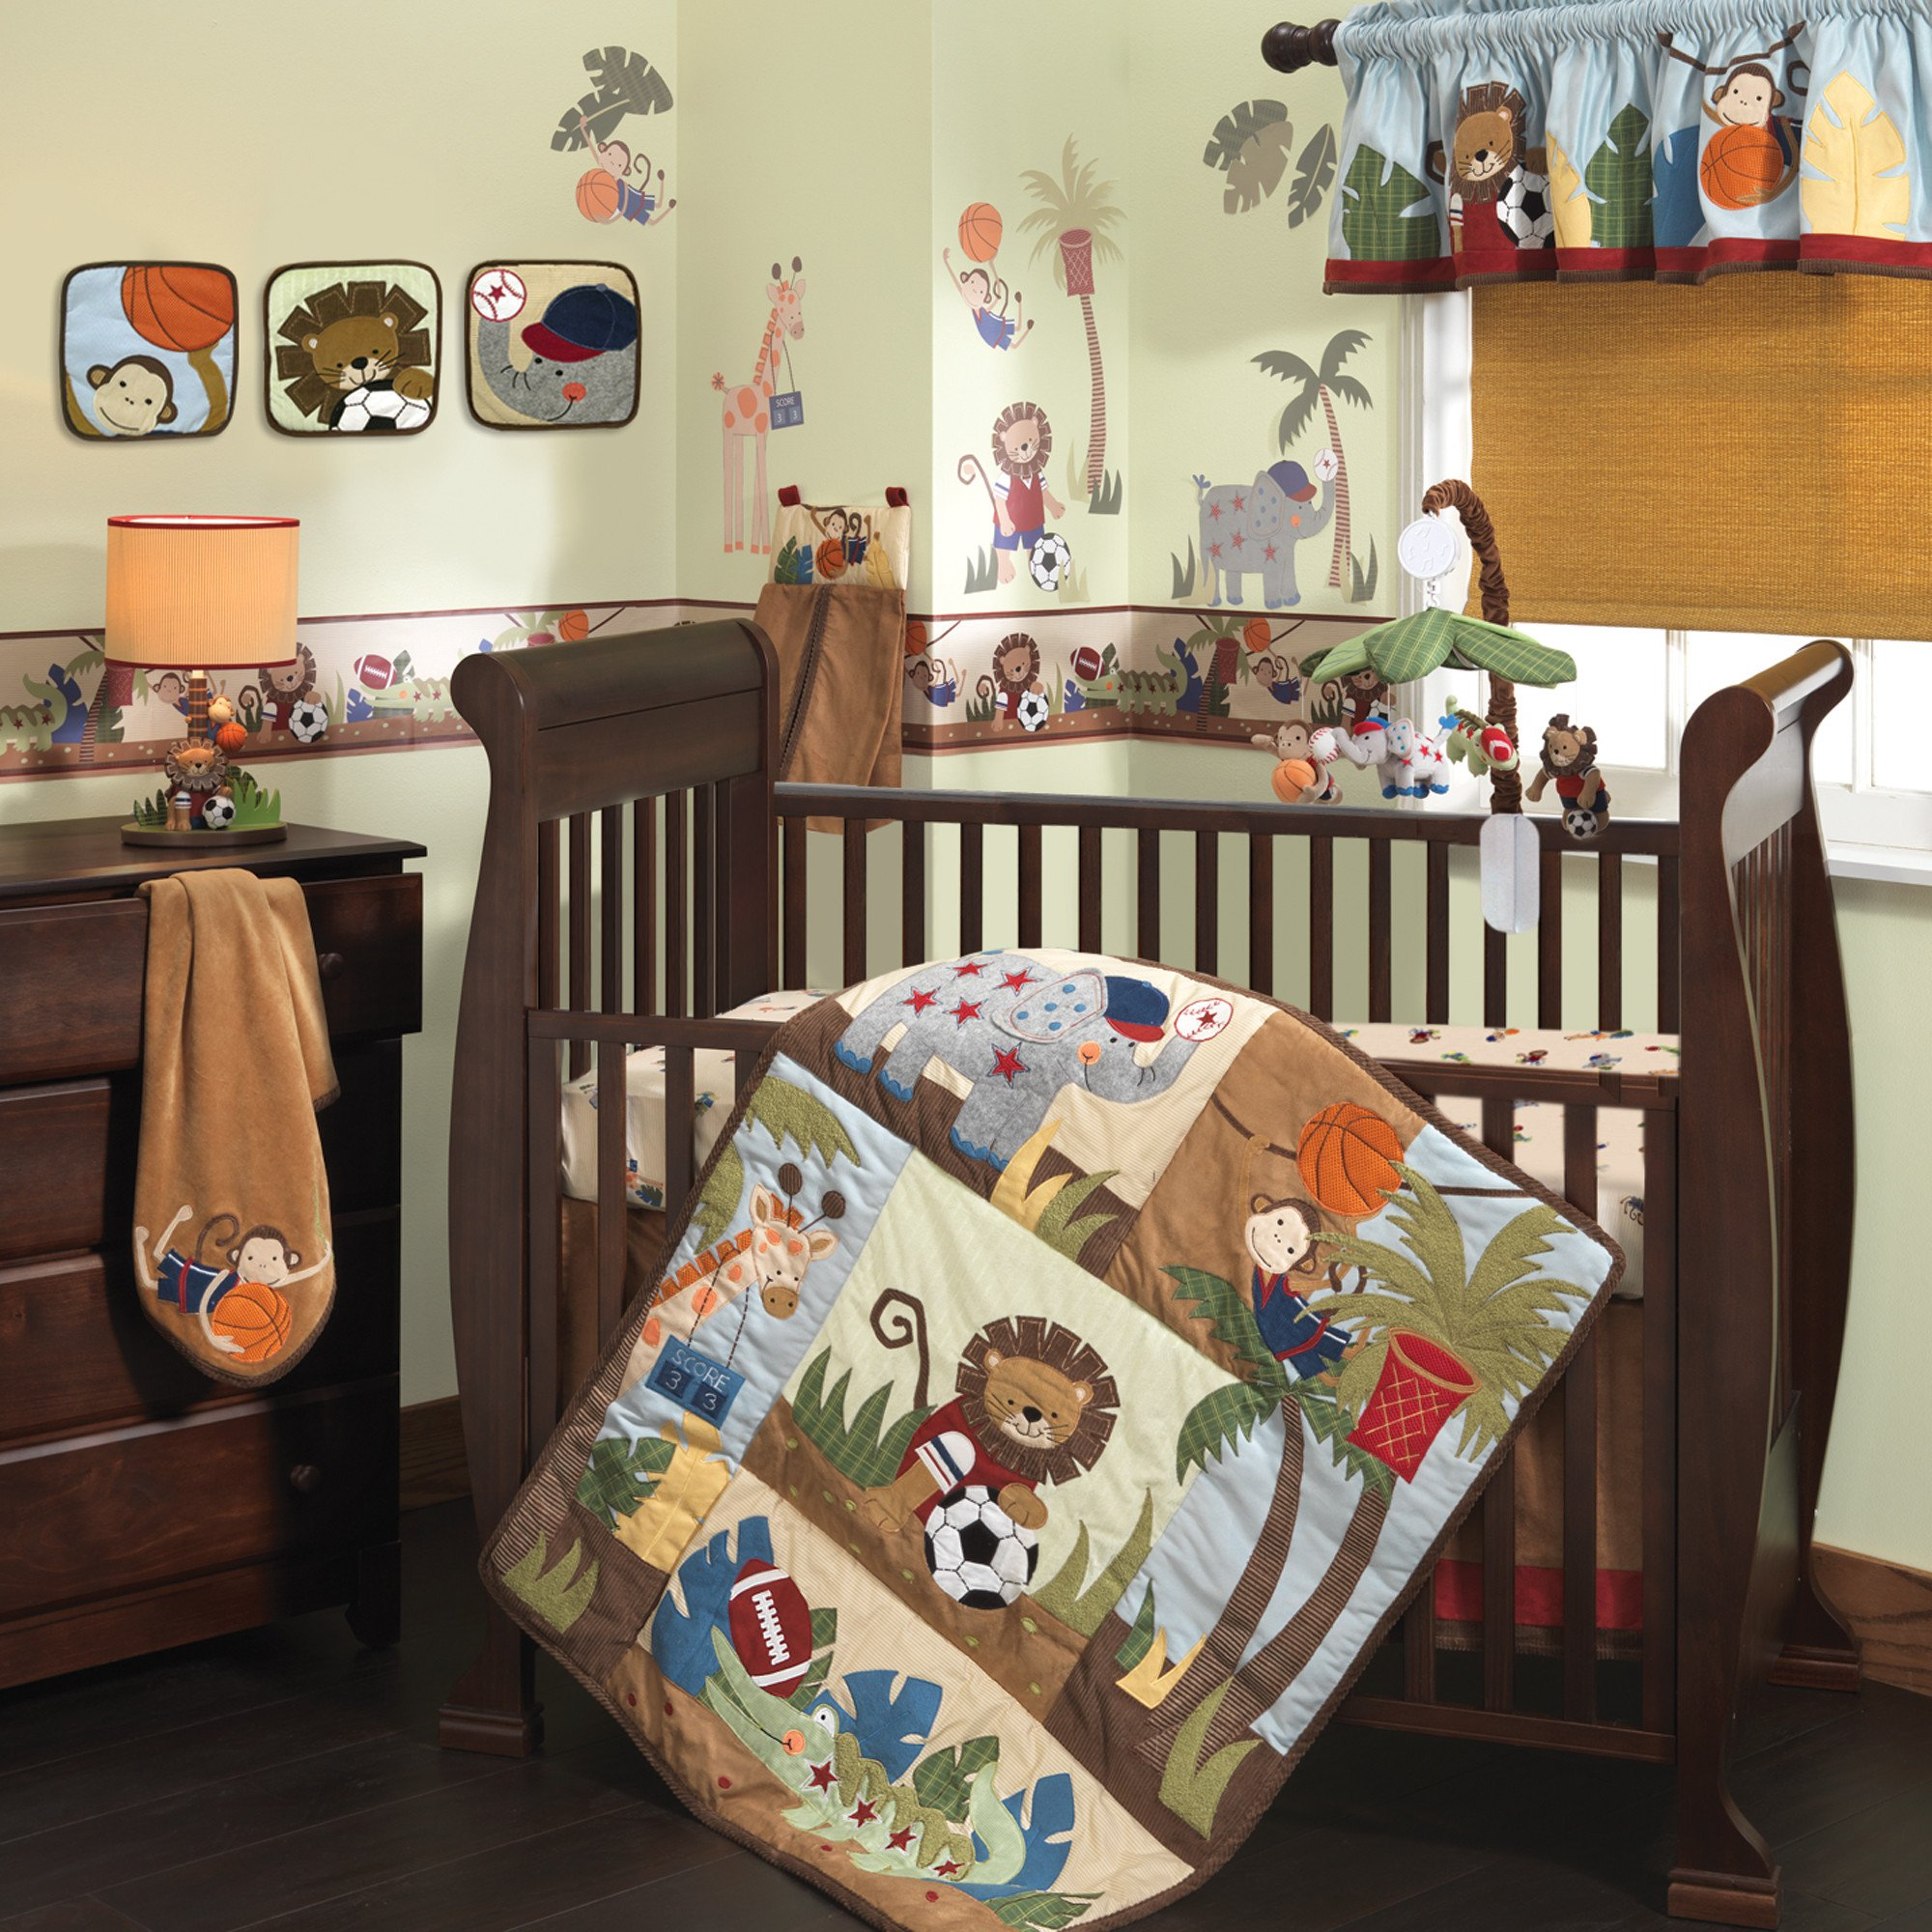 Toddler Stroller Jogging Lambs Ivy Team Safari 9 Piece Crib Bedding Set Ideal Baby